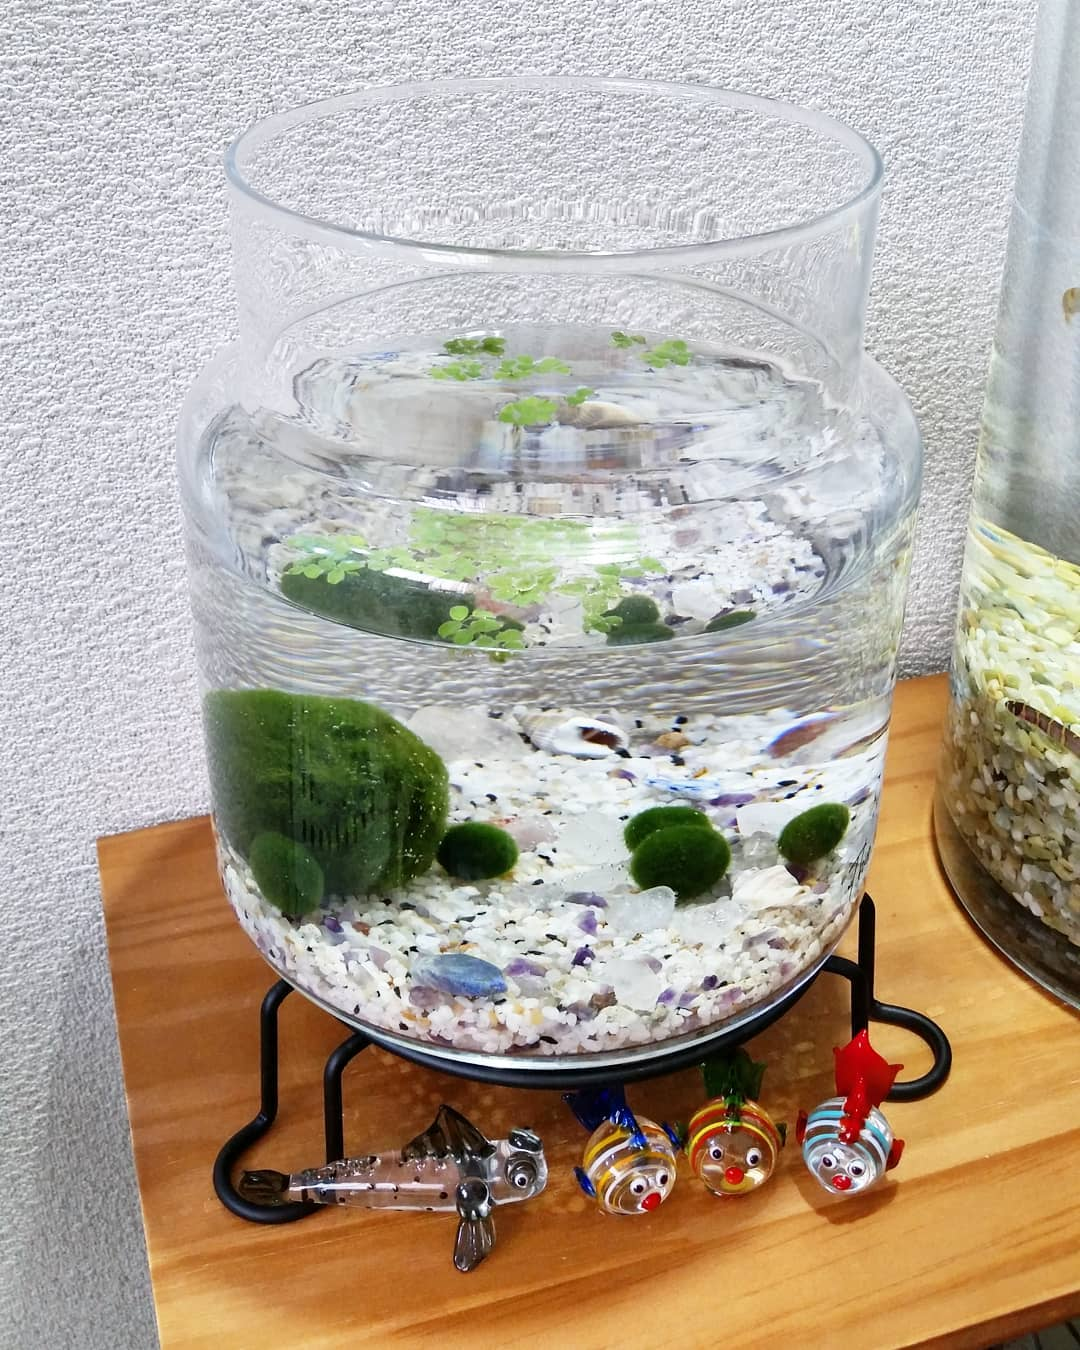 big and small marimo